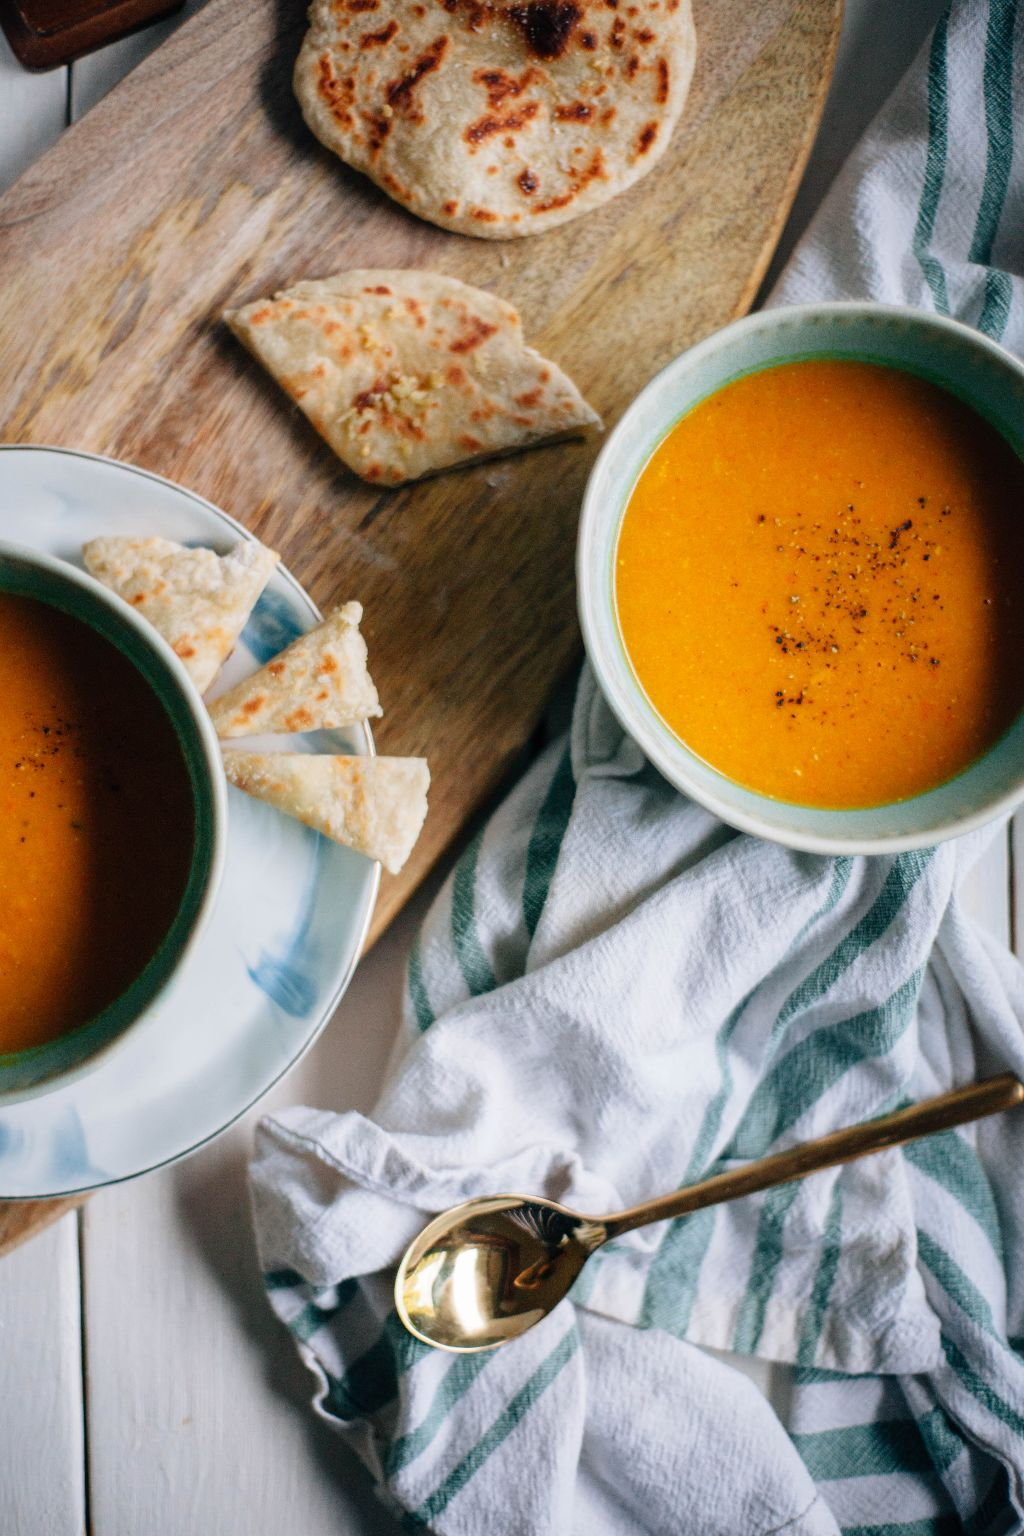 Curried Carrot Ginger Soup with Garlic Naan - Tastemaker Blog